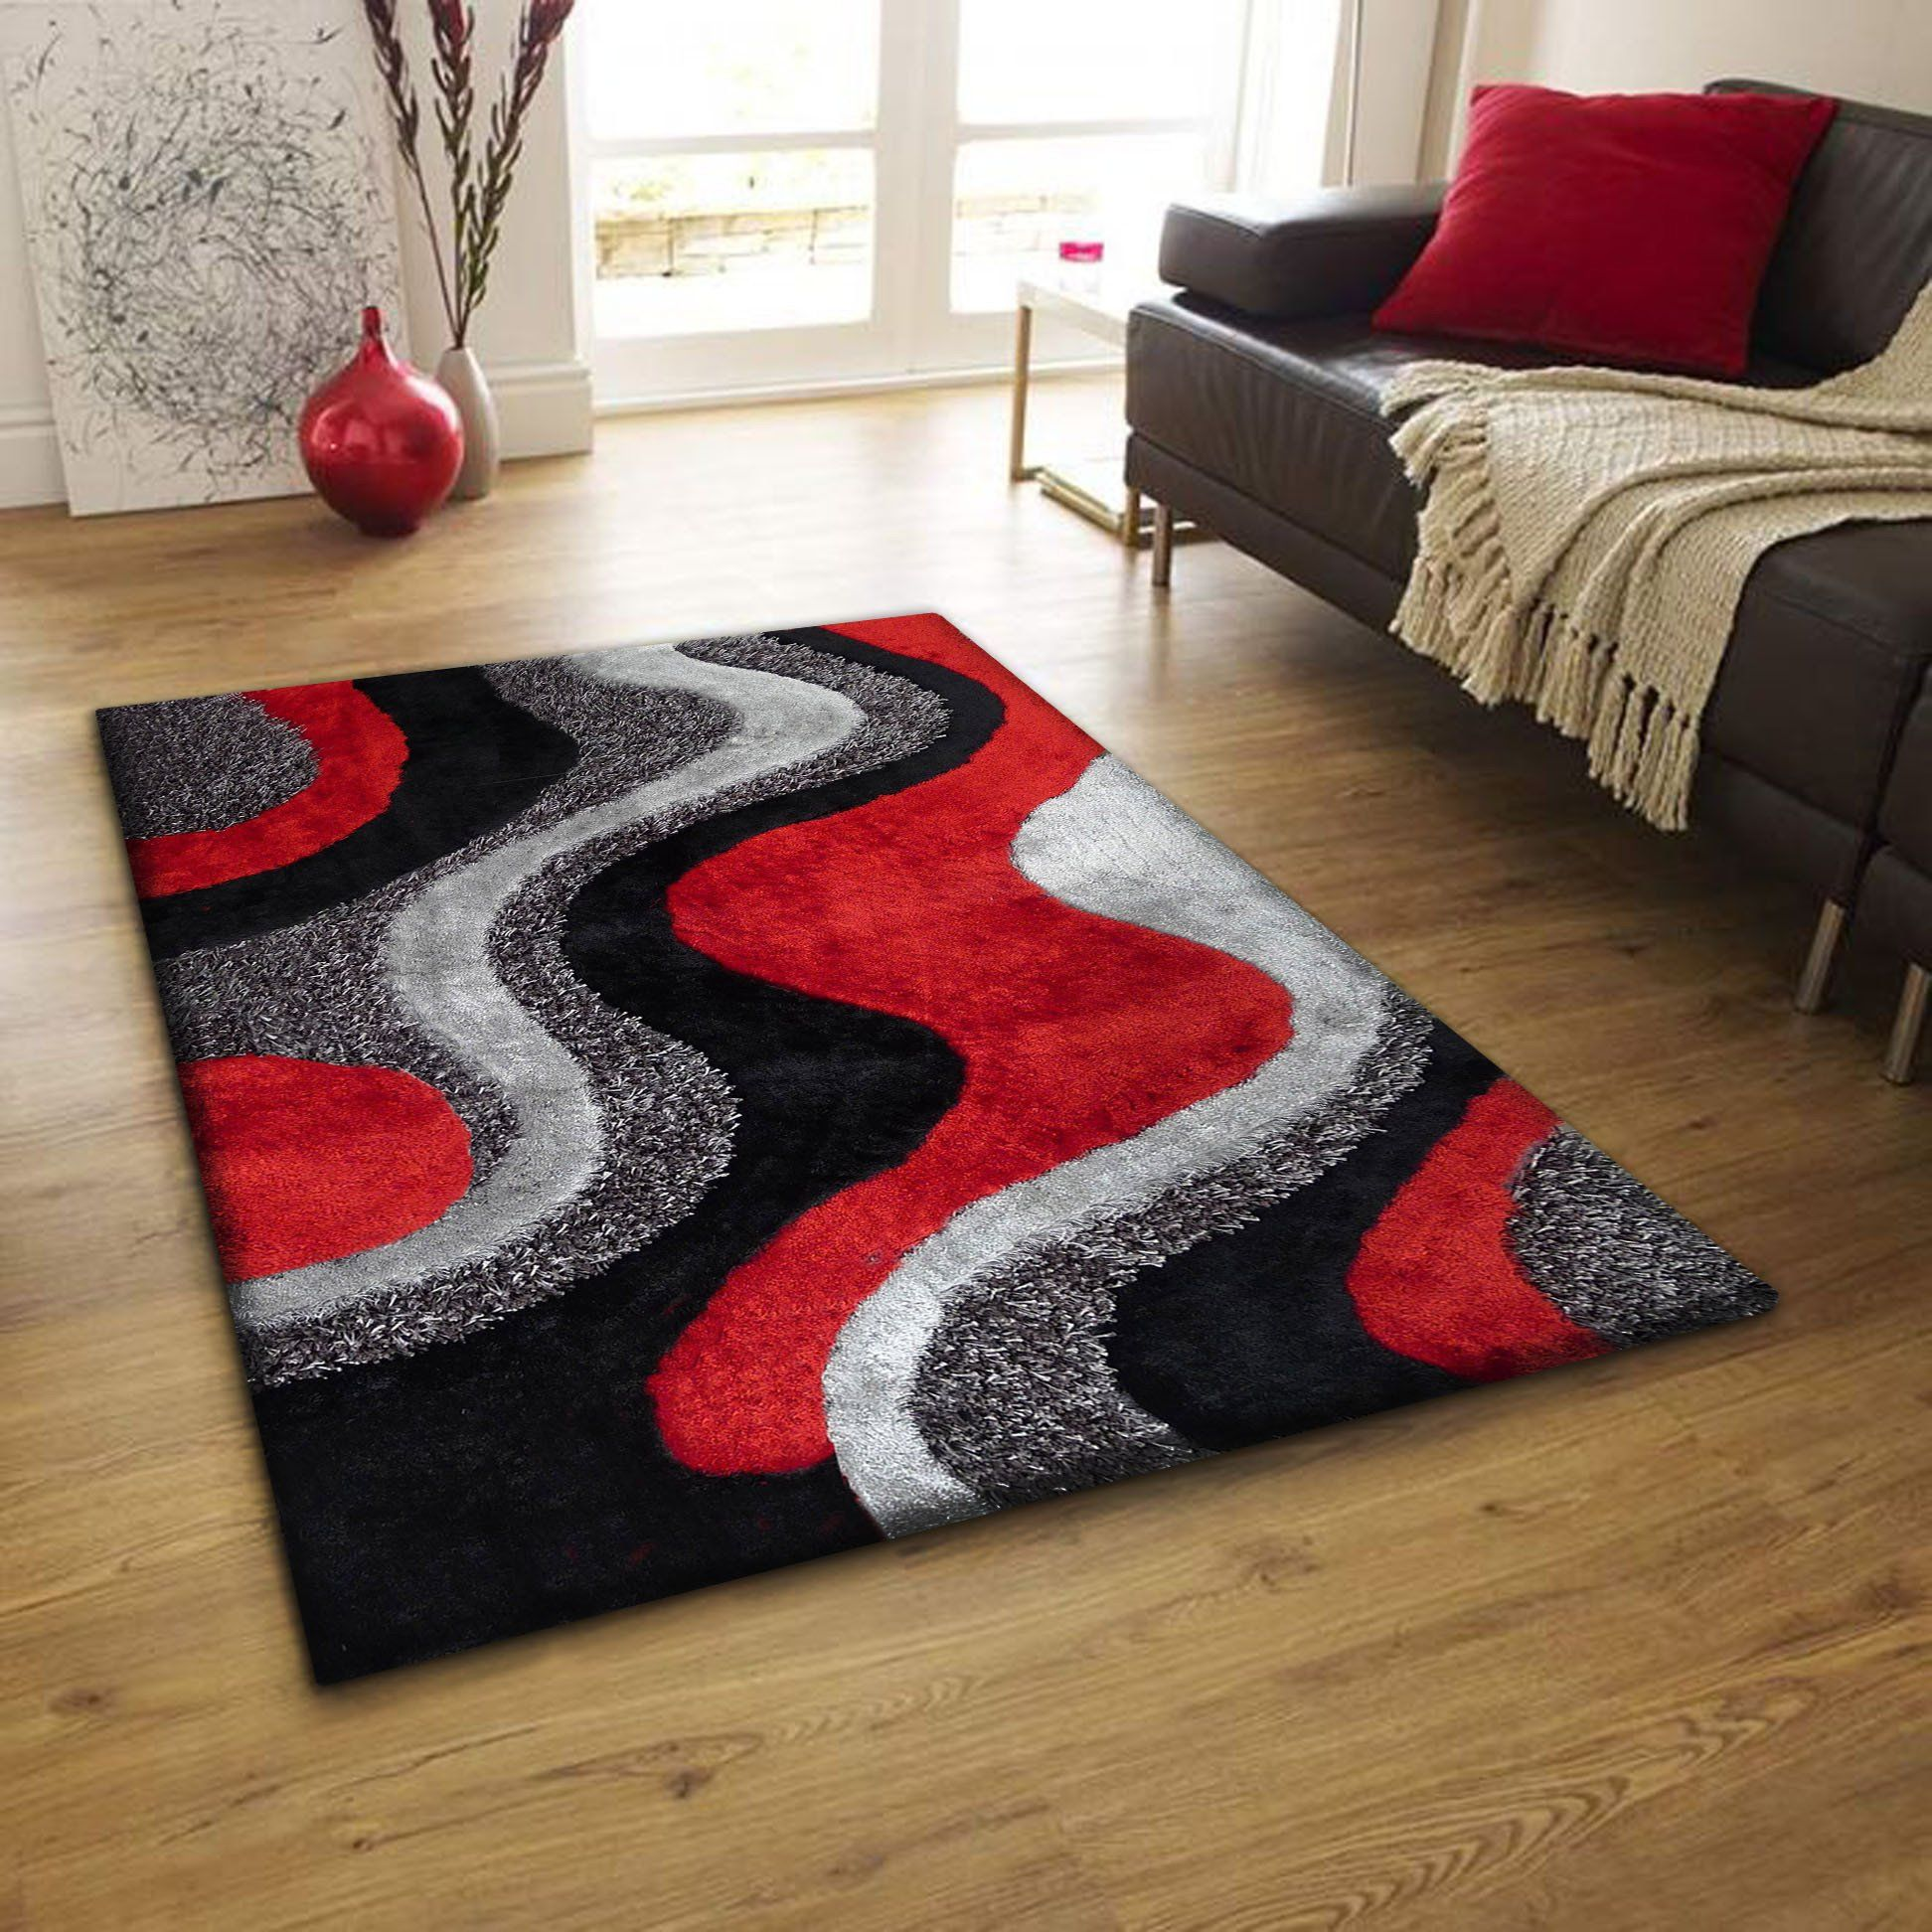 navy addiction zq then shag x peculiar safavieh red rugs rug set grey area with comfy vibrant toronto and blue